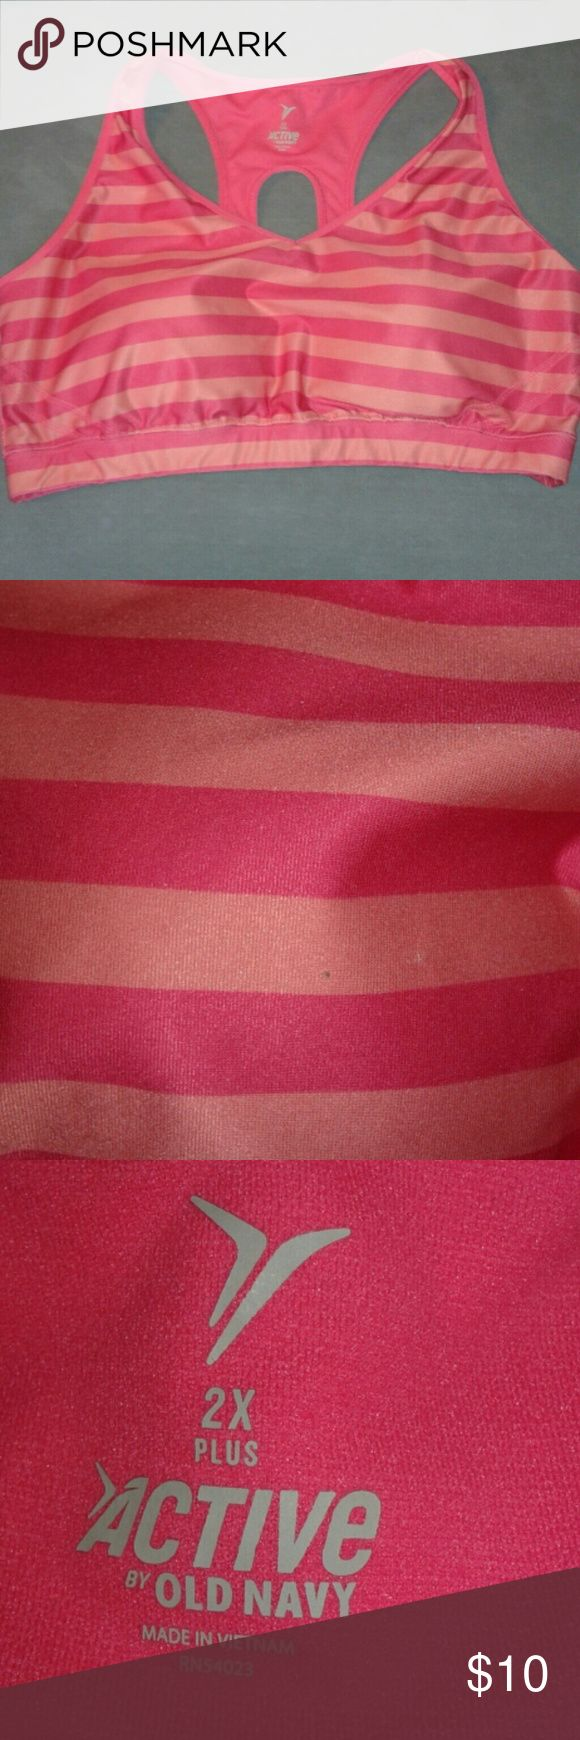 2X Pink Striped Sports Bra 2X pink striped sorts bra from Old Navy. In great condition, written maybe twice! All questions and offers welcome! Old Navy Intimates & Sleepwear Bras